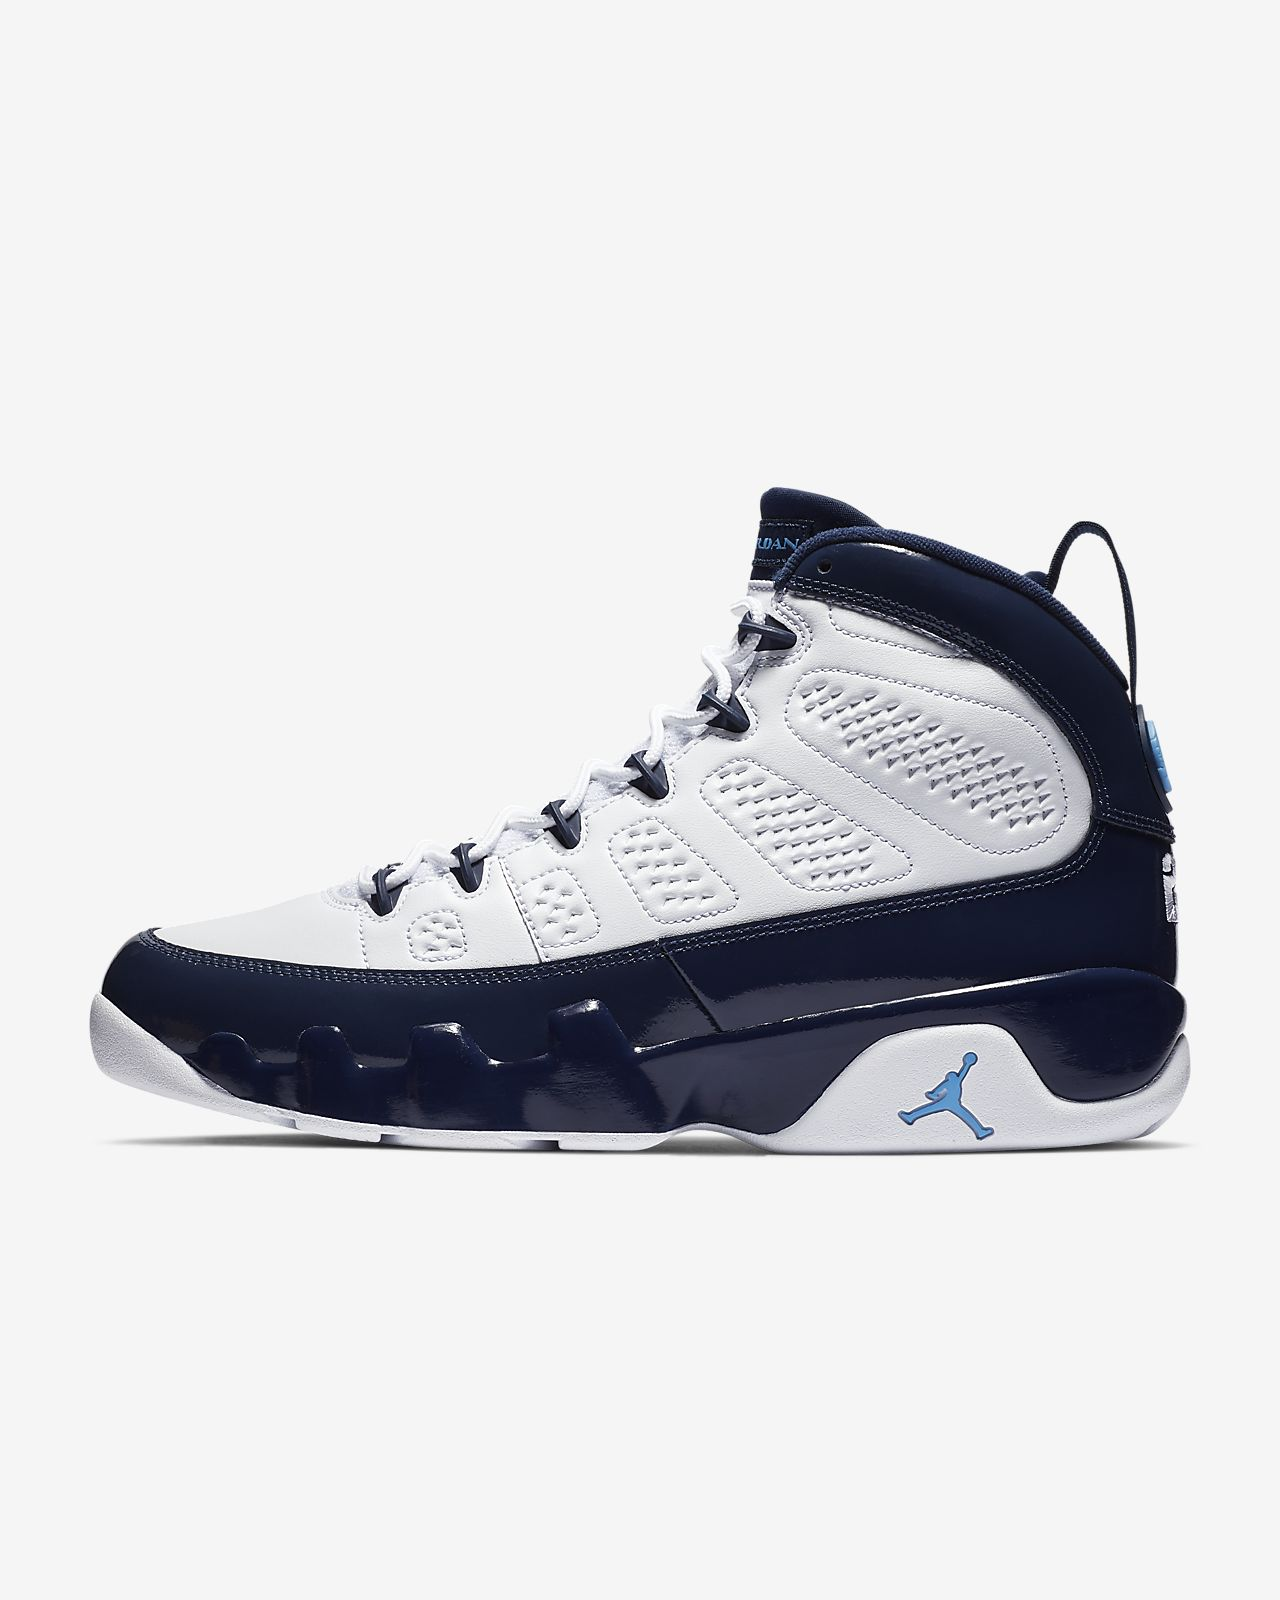 d41907793c5245 Air Jordan 9 Retro Men s Shoe. Nike.com